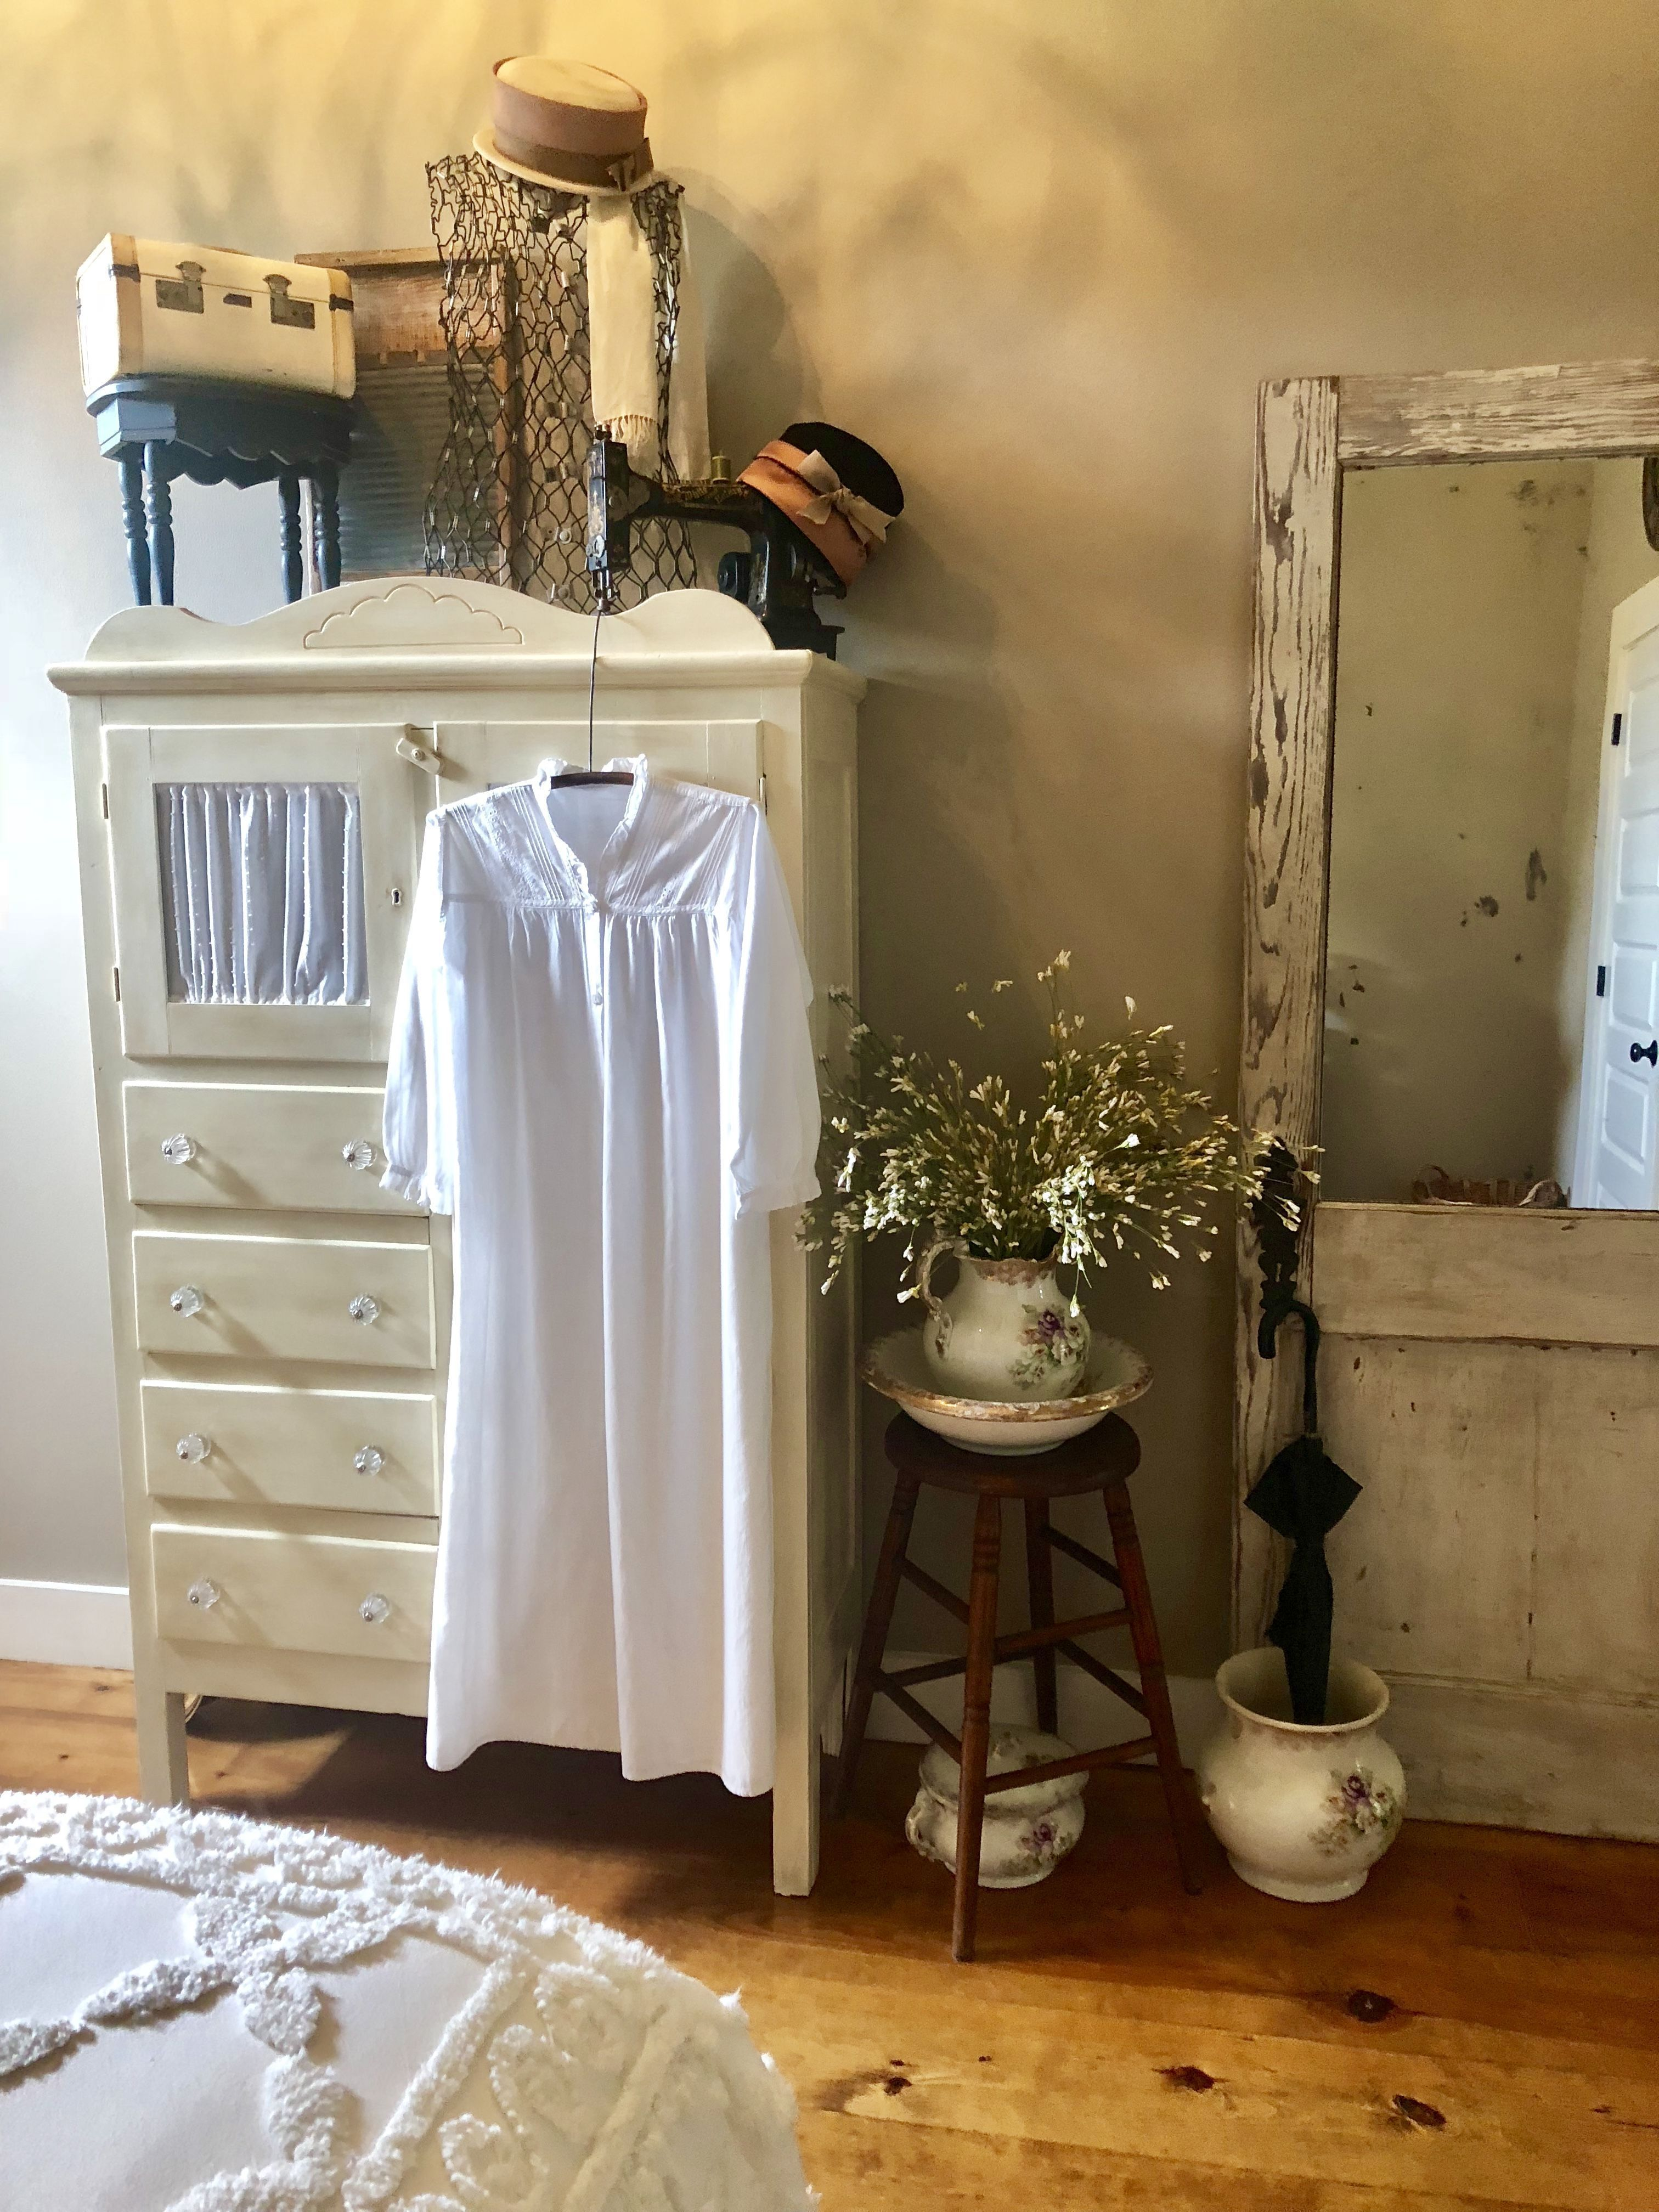 Nothing like family treasures to decorate with  #vintagebedroom #countrylivi